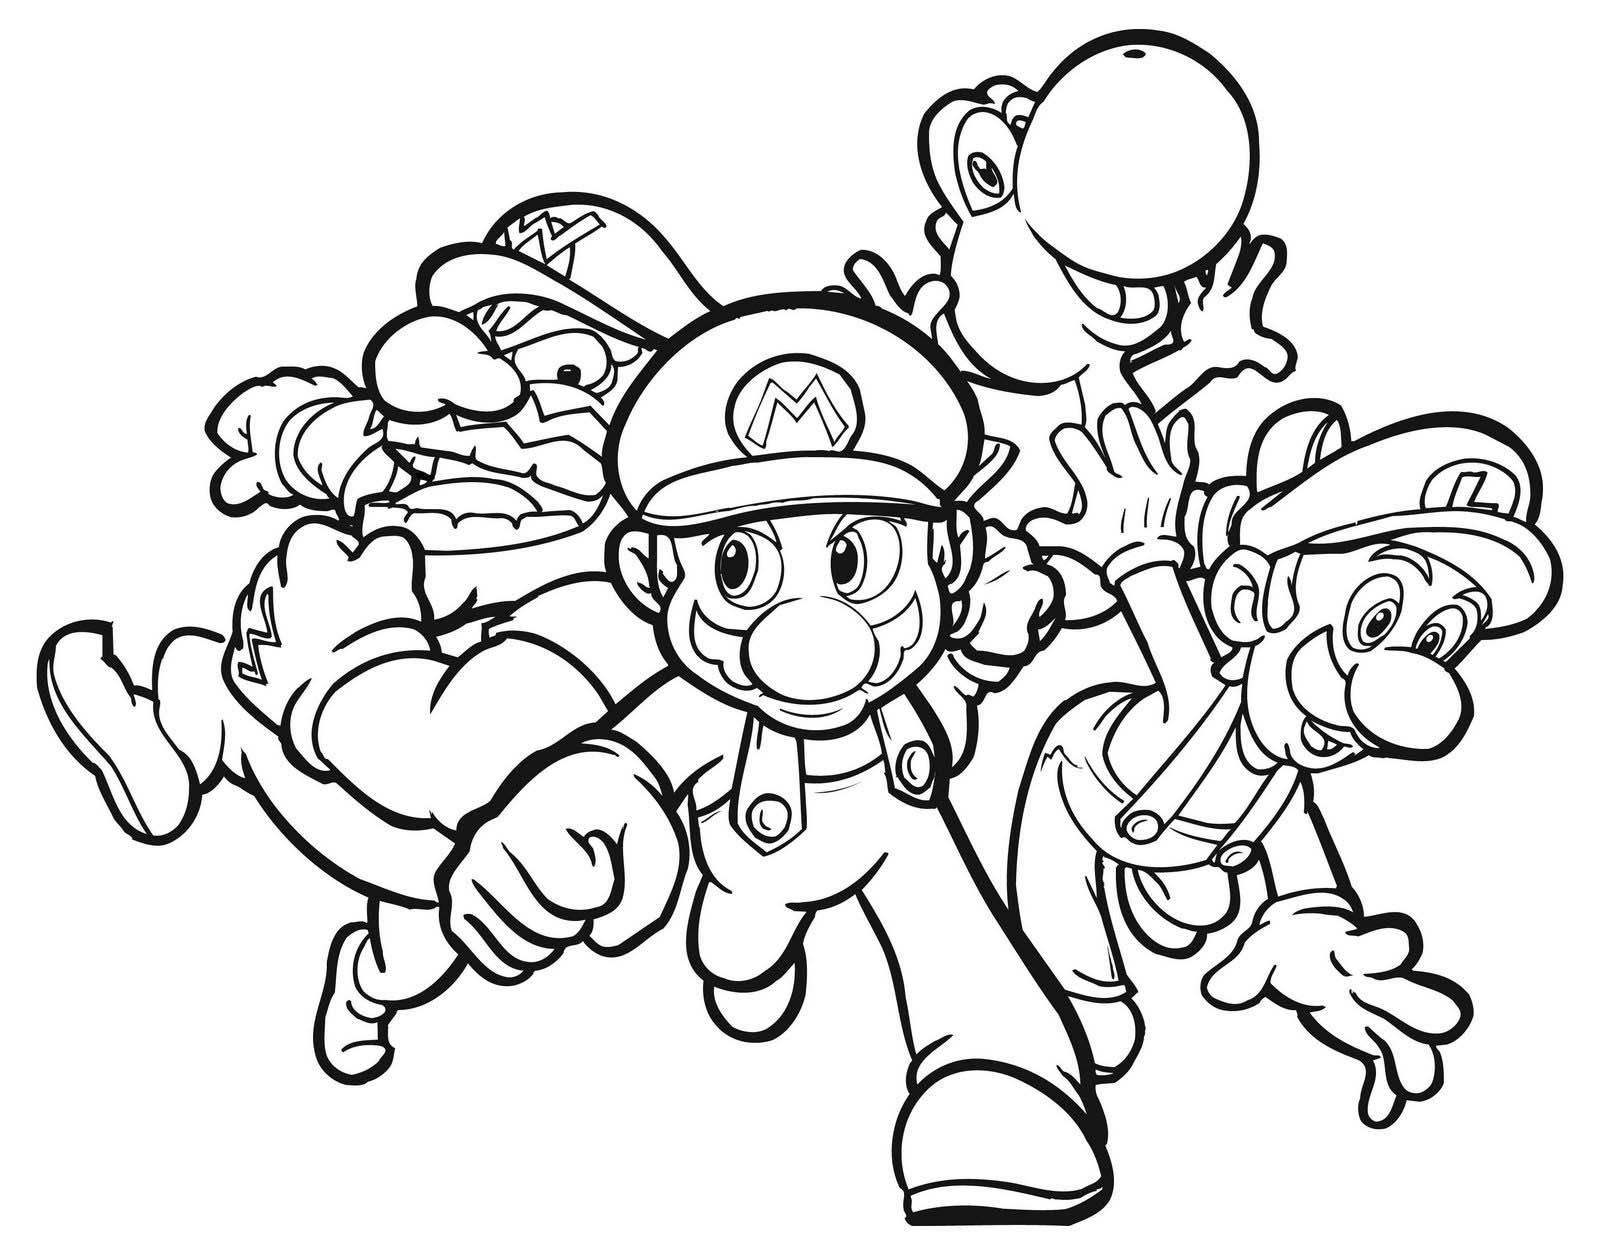 Coloring Pages Video Game Coloring Pages video game coloring pages to download and print for free pages